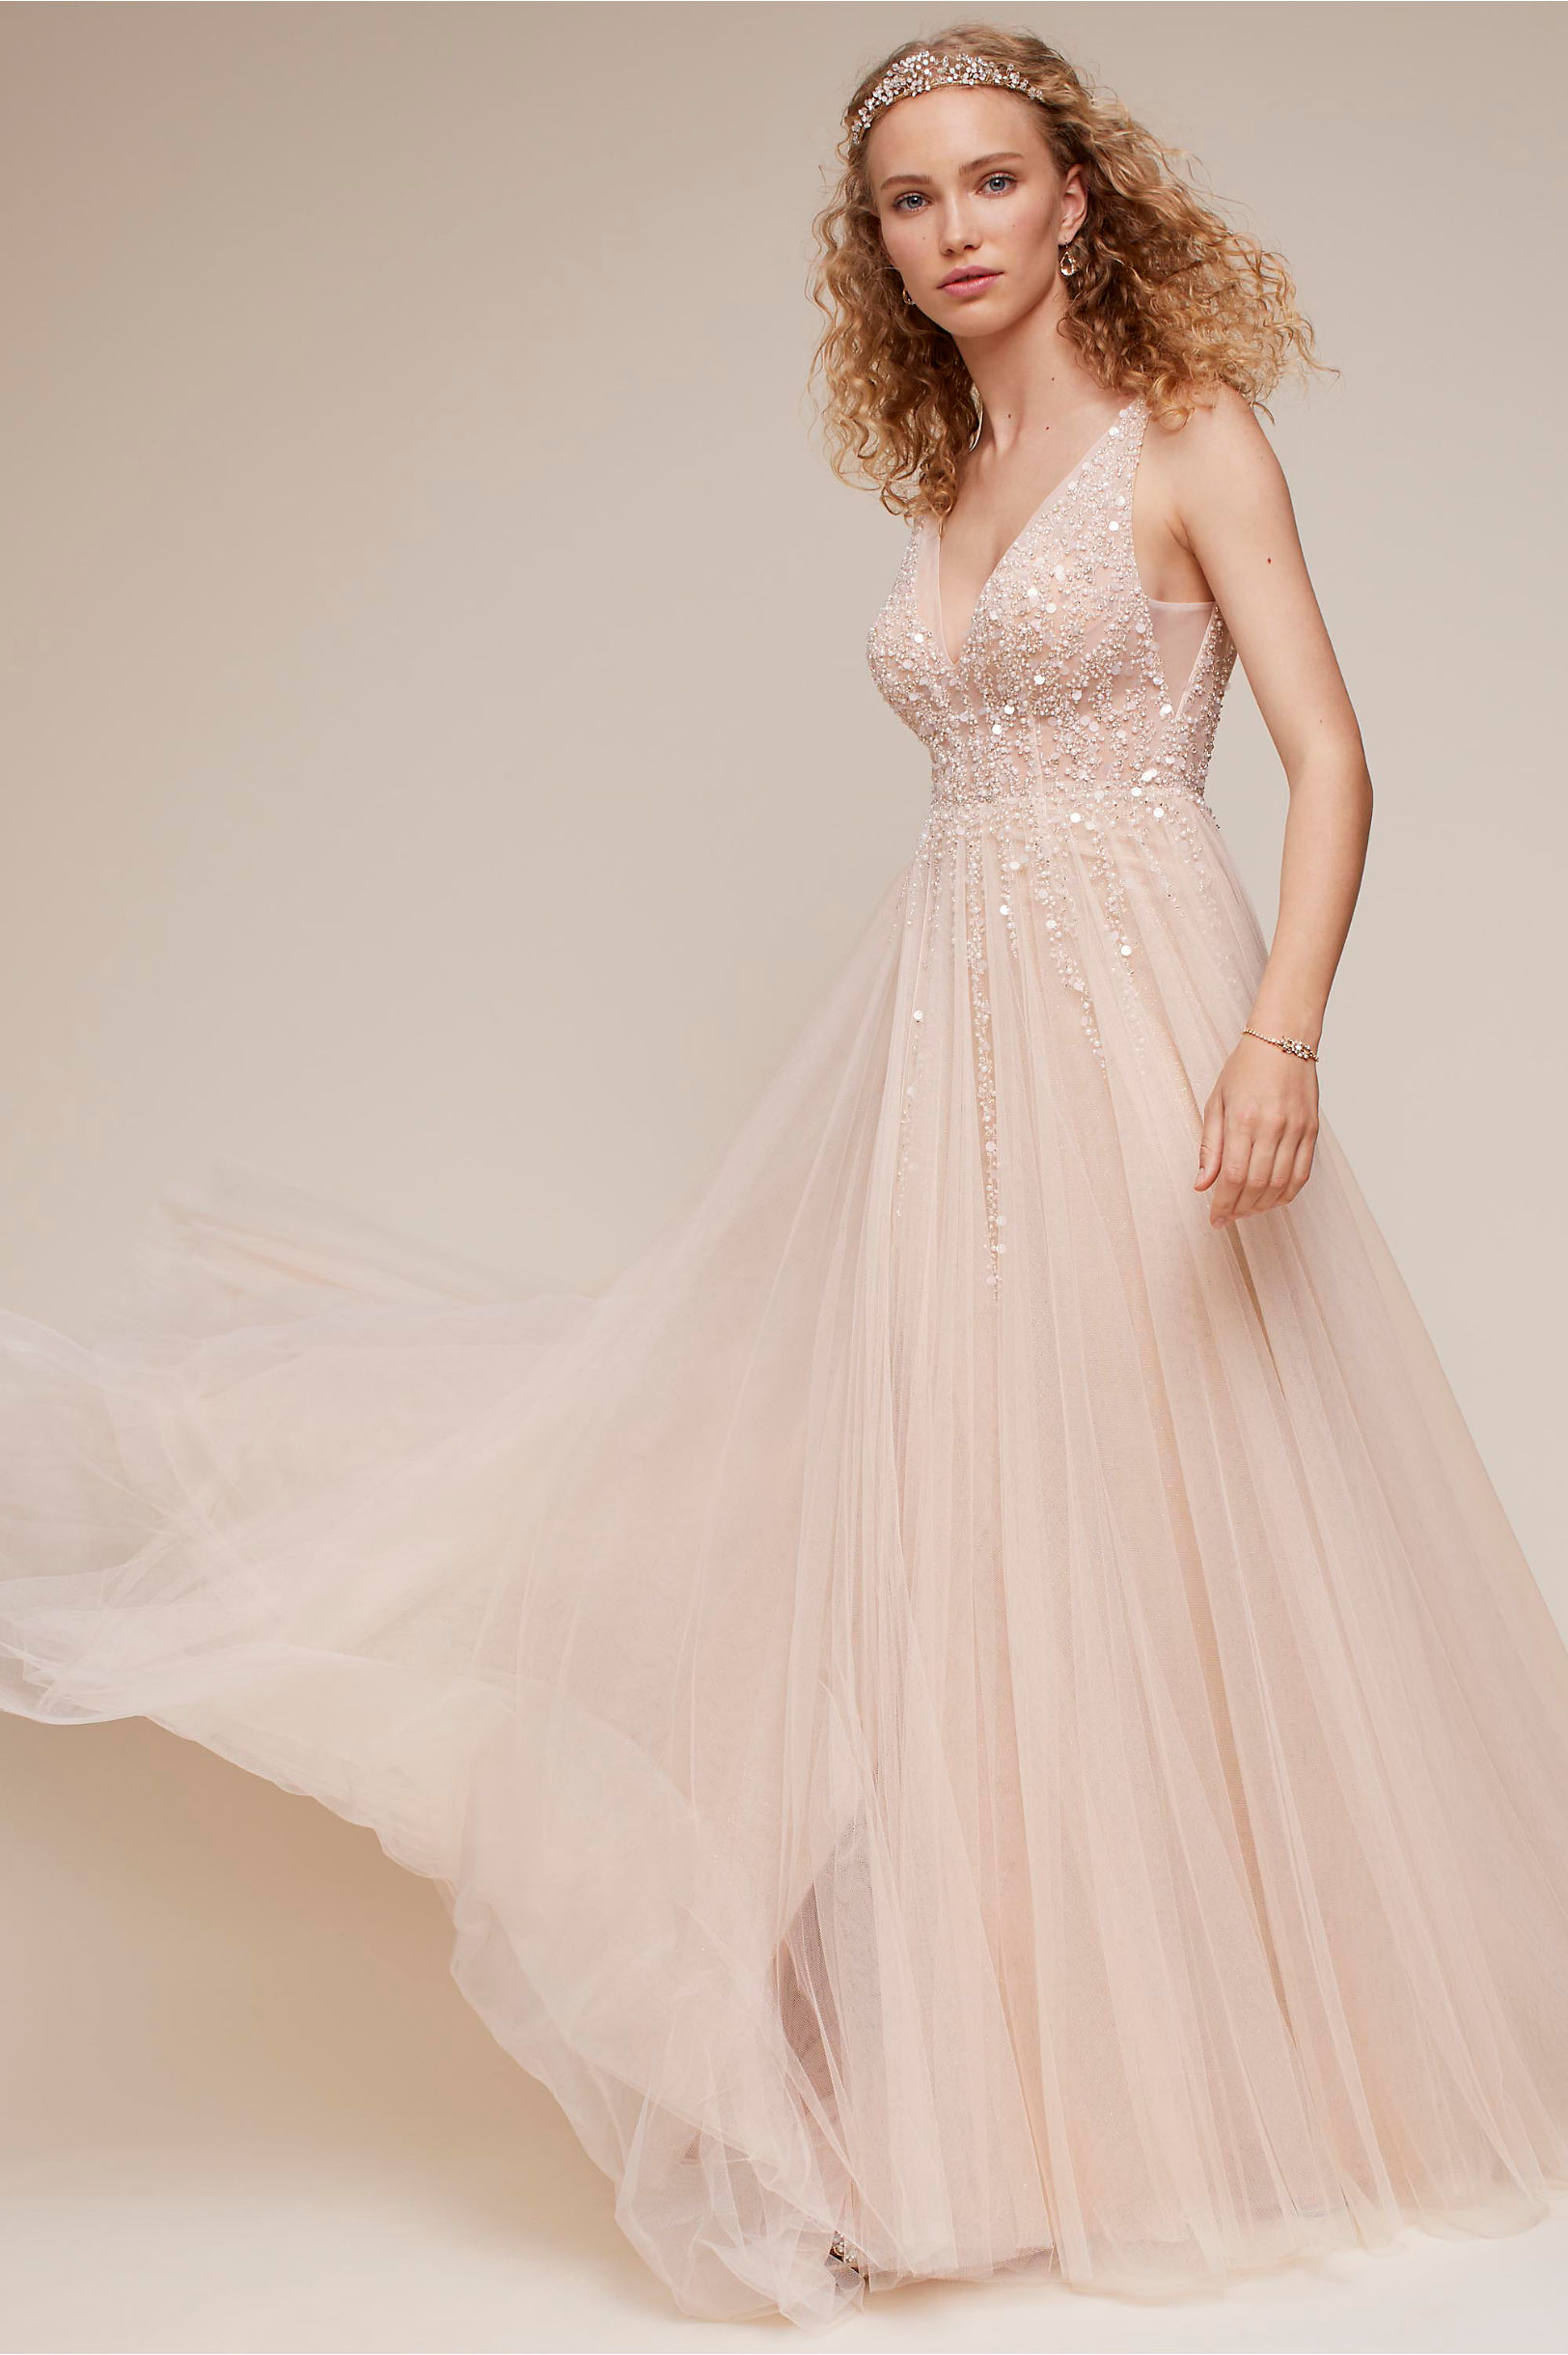 BHLDN Just Dropped a Whole New Line of Gowns Starting at $650